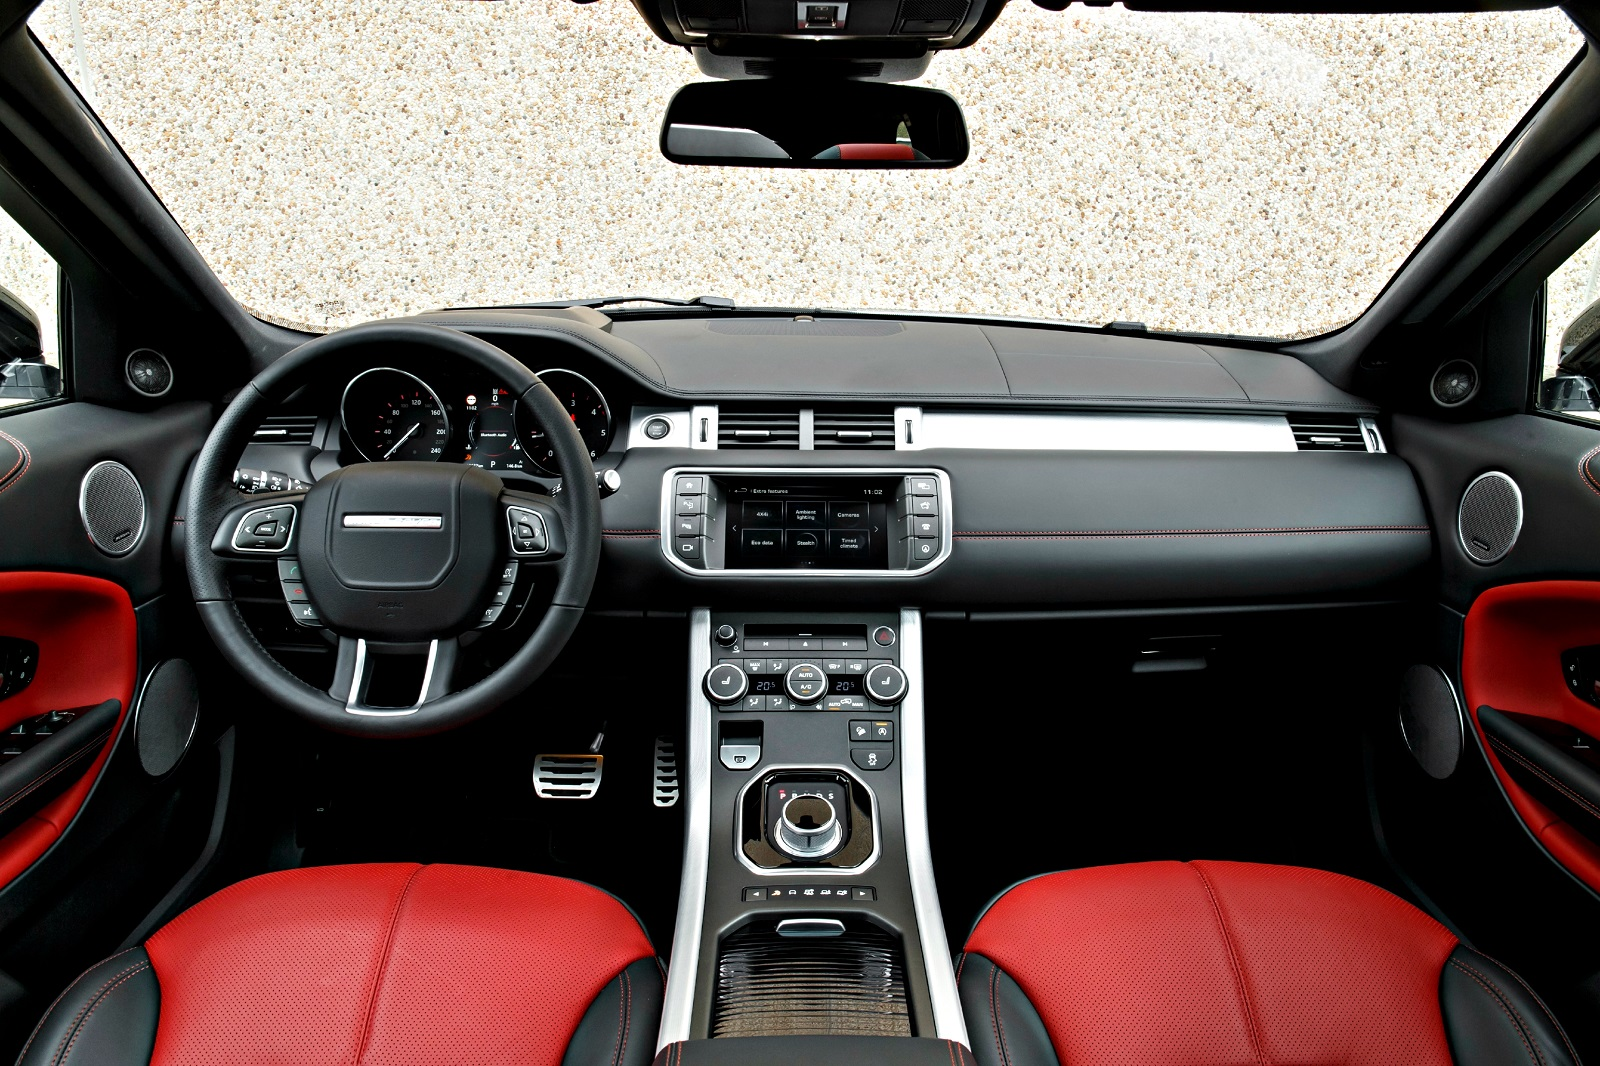 Essai range rover evoque restyl e plus qu 39 un simple suv for Interieur range rover evoque